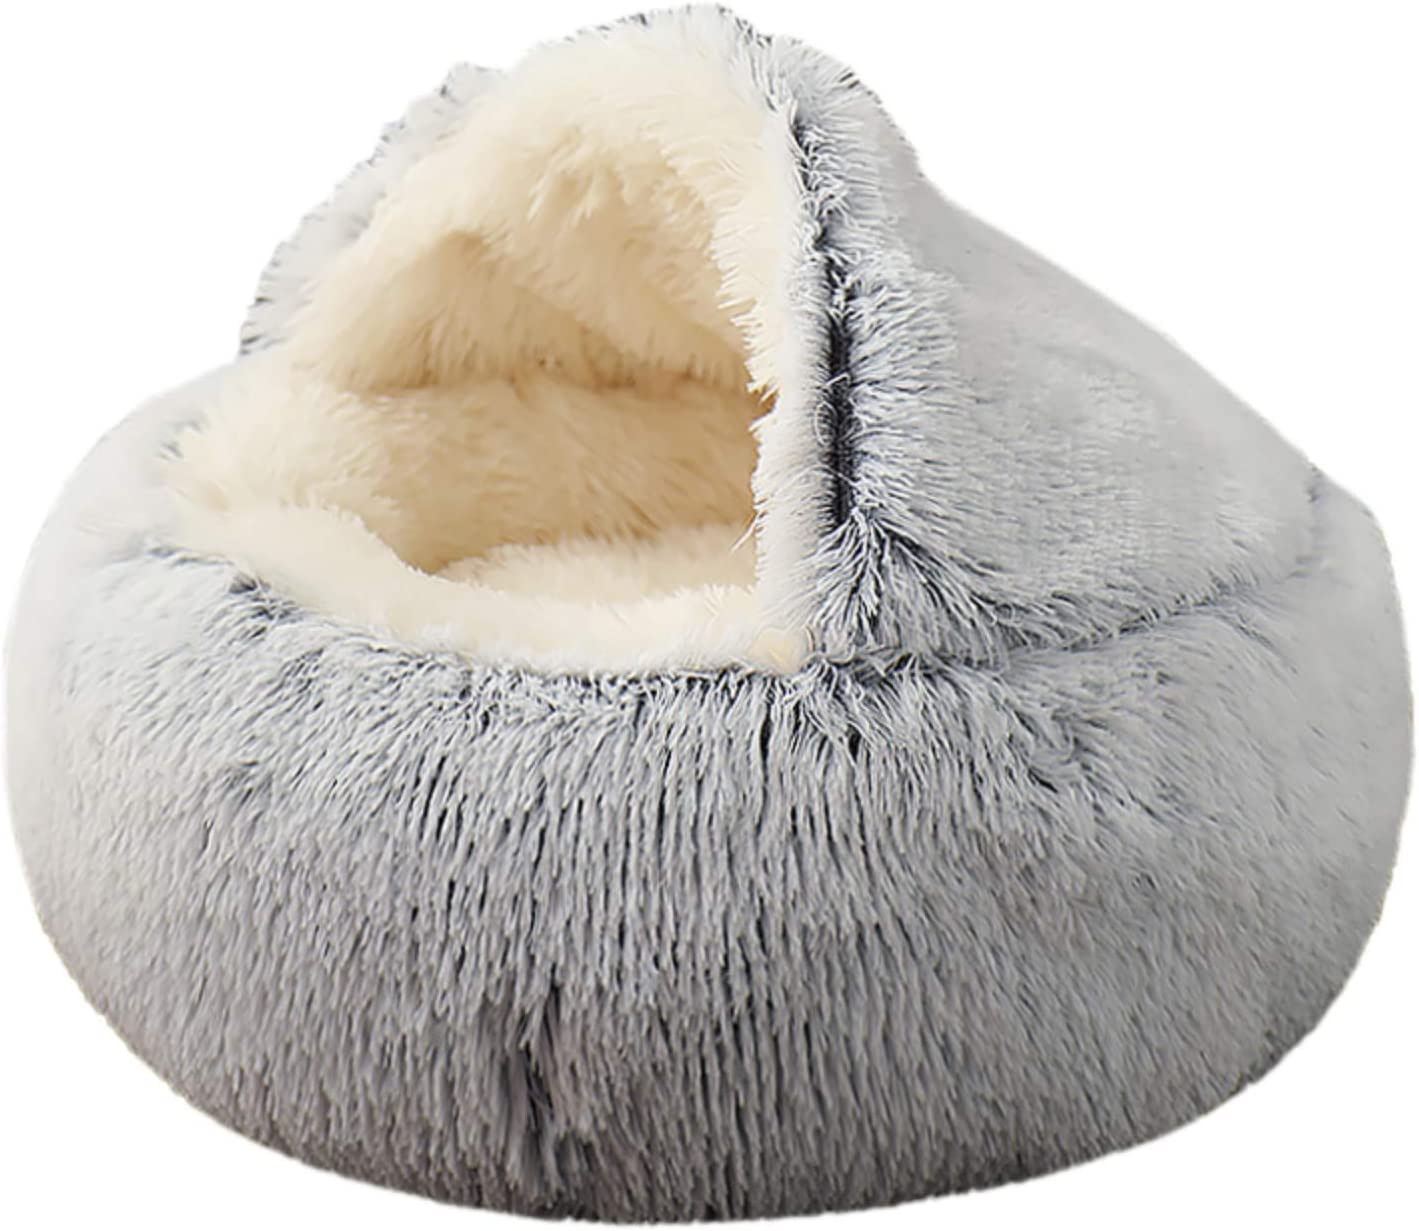 MIEMIE Cat Bed Round Soft Plush Burrowing Cave Hooded Cat Bed Donut for Dogs & Cats, Faux Fur Cuddler Round Comfortable Self Warming pet Bed, Machine Washable, Waterproof Bottom, Large, Grey